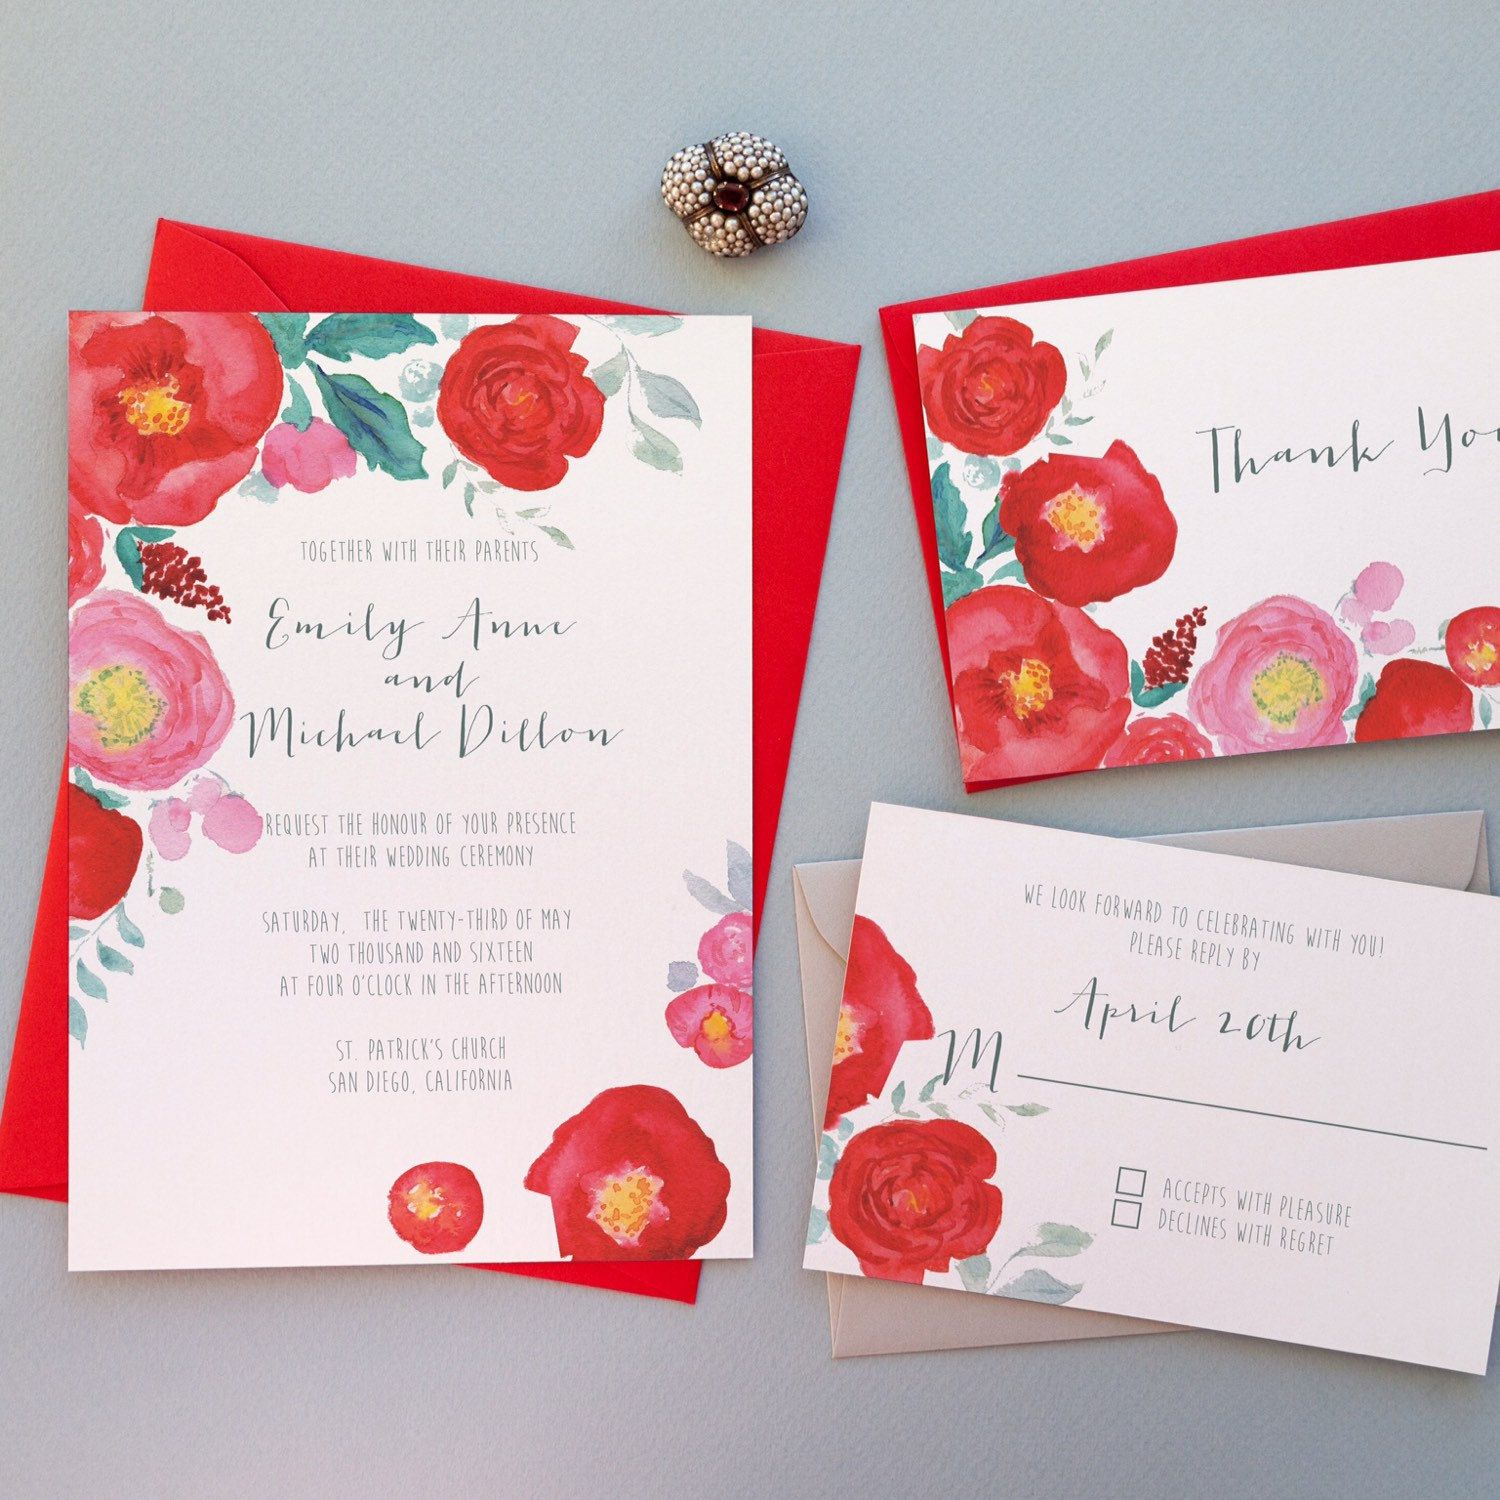 Rustic wedding invitation with red and pink flowers | Red Wedding ...